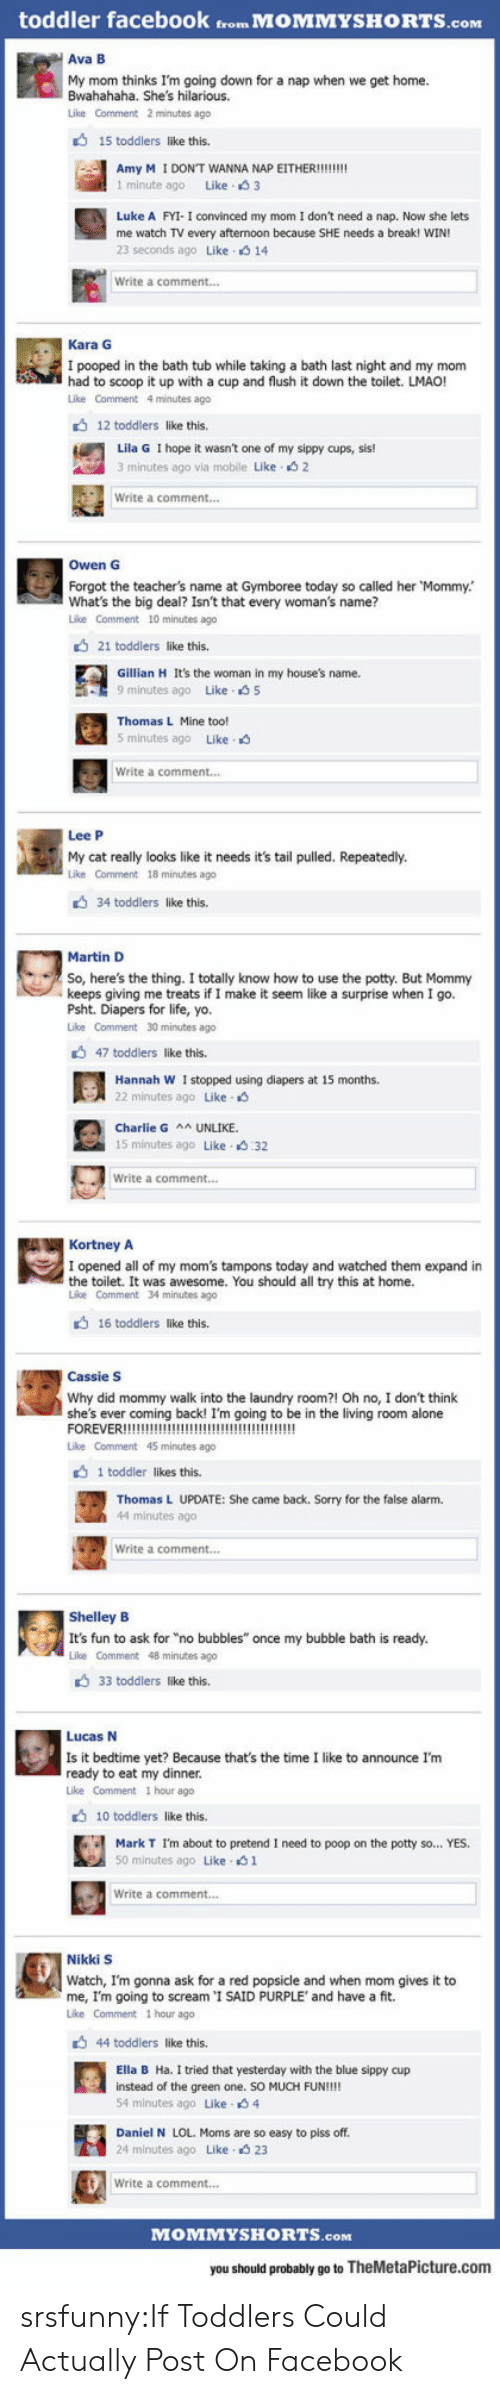 "Being Alone, Charlie, and Facebook: toddler facebook from MOMMYSHORTS.com  Ava B  My mom thinks I'm going down for a nap when we get home.  Bwahahaha. She's hilarious.  Like Comment 2 minutes ago  15 toddlers like this.  1 minute ago Like 3  Luke A FYI- I convinced my mom I don't need a nap. Now she lets  me watch TV every afternoon because SHE needs a break! WIN  23 seconds ago Like 14  Write a comment...  Kara G  I pooped in the bath tub while taking a bath last night and my mom  had to scoop it up with a cup and flush it down the toilet. LMAO!  Like Comment 4 minutes ago  12 toddlers like this  Lila G I hope it wasn't one of my sippy cups, sis!  3 minutes ago via mobile Like s 2  Write a comment...  Owen G  Forgot the teacher's name at Gymboree today so called her Mommy.  What's the big deal? Isn't that every woman's name?  Like Comment 10 minutes ago  21 toddlers like this.  Gillian H It's the woman in my house's name.  9 minutes ago Like 5  Thomas L Mine too!  5 minutes ago Like.  Write a comment...  Lee P  My cat really looks like it needs it's tail pulled. Repeatedly.  Like Comment 18 minutes ago  34 toddlers like this.  Martin D  So, here's the thing. I totally know how to use the potty. But Mommy  keeps giving me treats if I make it seem like a surprise when I go.  Psht. Diapers for life, yo.  Like Comment 30 minutes ago  47 toddlers like this.  Hannah W I stopped using diapers at 15 months.  22 minutes ago Like  Charlie G UNLIKE  15 minutes ago Like 32  Write a comment..  KortneyA  I opened all of my mom's tampons today and watched them expand in  the toilet. It was awesome. You should all try this at home.  Like Comment 34 minutes ago  16 toddlers like this.  Cassie S  Why did mommy walk into the laundry room?! Oh no, I don't think  she's ever coming back! I'm going to be in the living room alone  Like Comment 45 minutes ago  1 toddler likes this.  Thomas L UPDATE: She came back. Sorry for the false alarm.  44 minutes ago  Write a comment...  Shelley B  It's fun to ask for ""no bubbles"" once my bubble bath is ready.  Like Comment 48 minutes ago  33 toddlers like this.  Lucas N  Is it bedtime yet? Because that's the time I like to announce I'm  ready to eat my dinner  Like Comment 1 hour ago  10 toddlers like this.  Mark T I'm about to pretend I need to poop on the potty so... YES.  50 minutes ago Like 1  Write a comment...  Nikki S  Watch, I'm gonna ask for a red popsicle and when mom gives it to  me, I'm going to scream 'I SAID PURPLE' and have a fit.  Like Comment 1 hour ago  44 toddlers like this.  Ella B Ha. I tried that yesterday with the blue sippy cup  instead of the green one. SO MUCH FUN!!!!  54 minutes ago Like 4  Daniel N LOL. Moms are so easy to piss off  24 minutes ago Like- 23  Write a comment...  MOMMYSHORTS.com  you should probably go to TheMetaPicture.com srsfunny:If Toddlers Could Actually Post On Facebook"